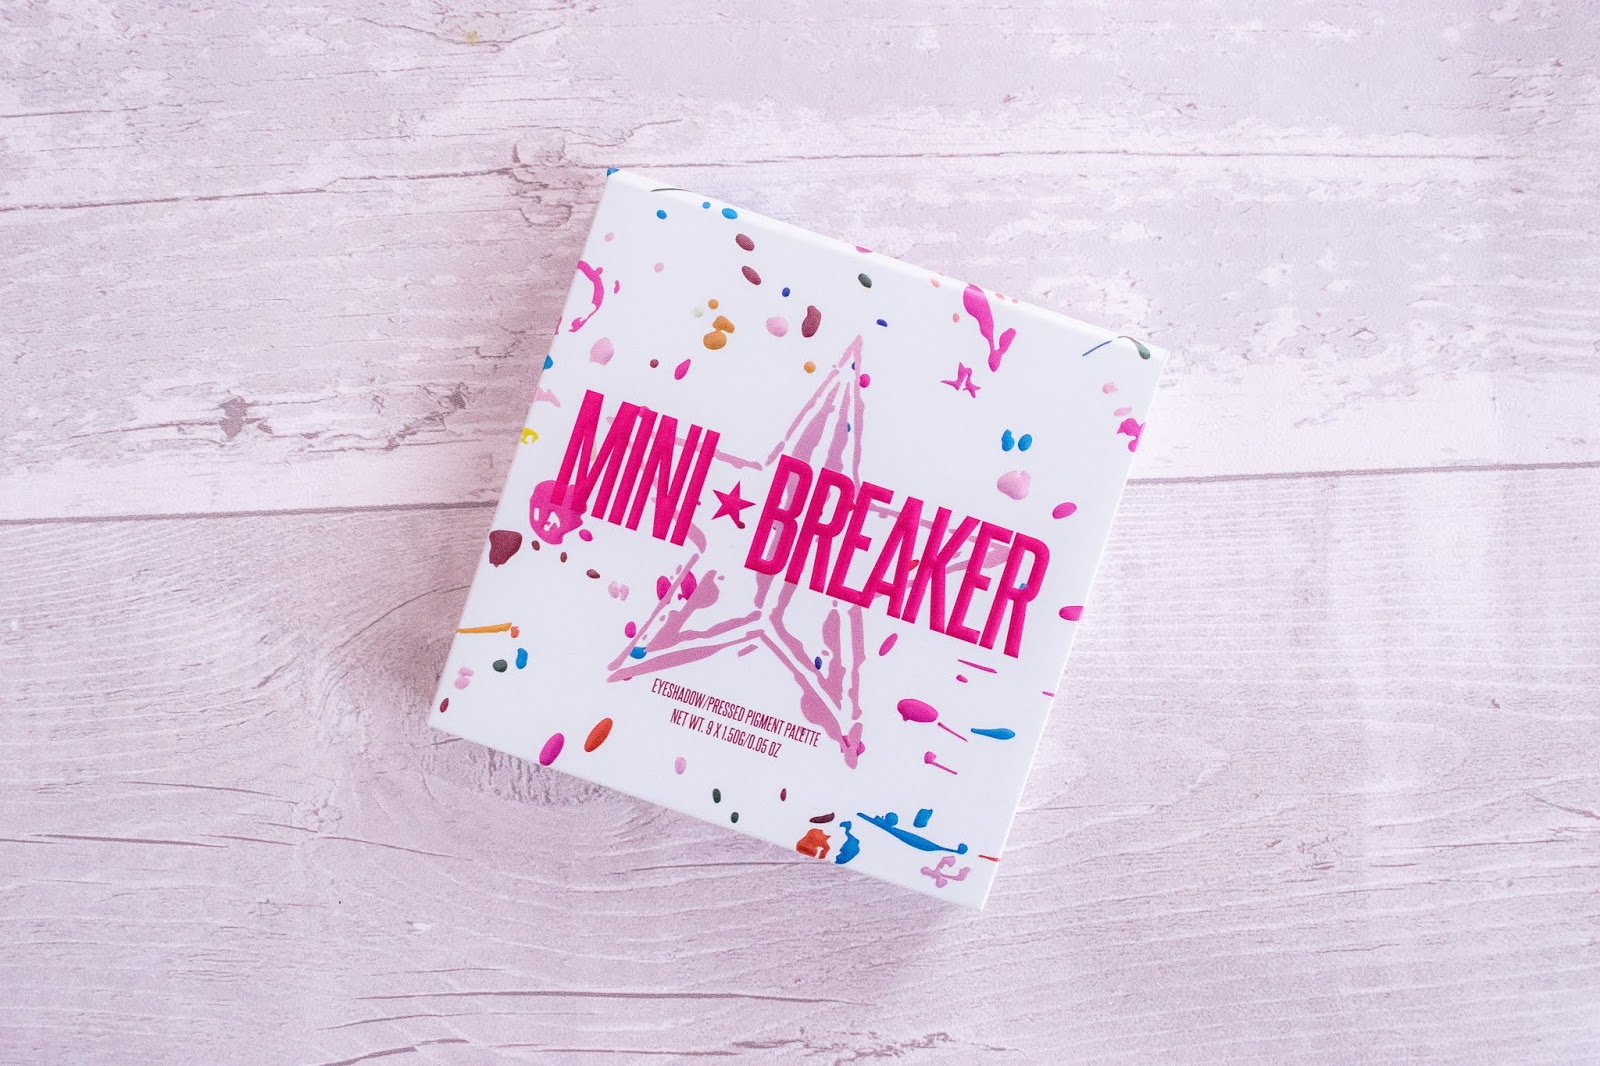 A close up of the Jeffree Star Mini Breaker palette. The palette is white with blue and pink splats over and the Jeffree Star logo in pink under the words Mini Breaker.